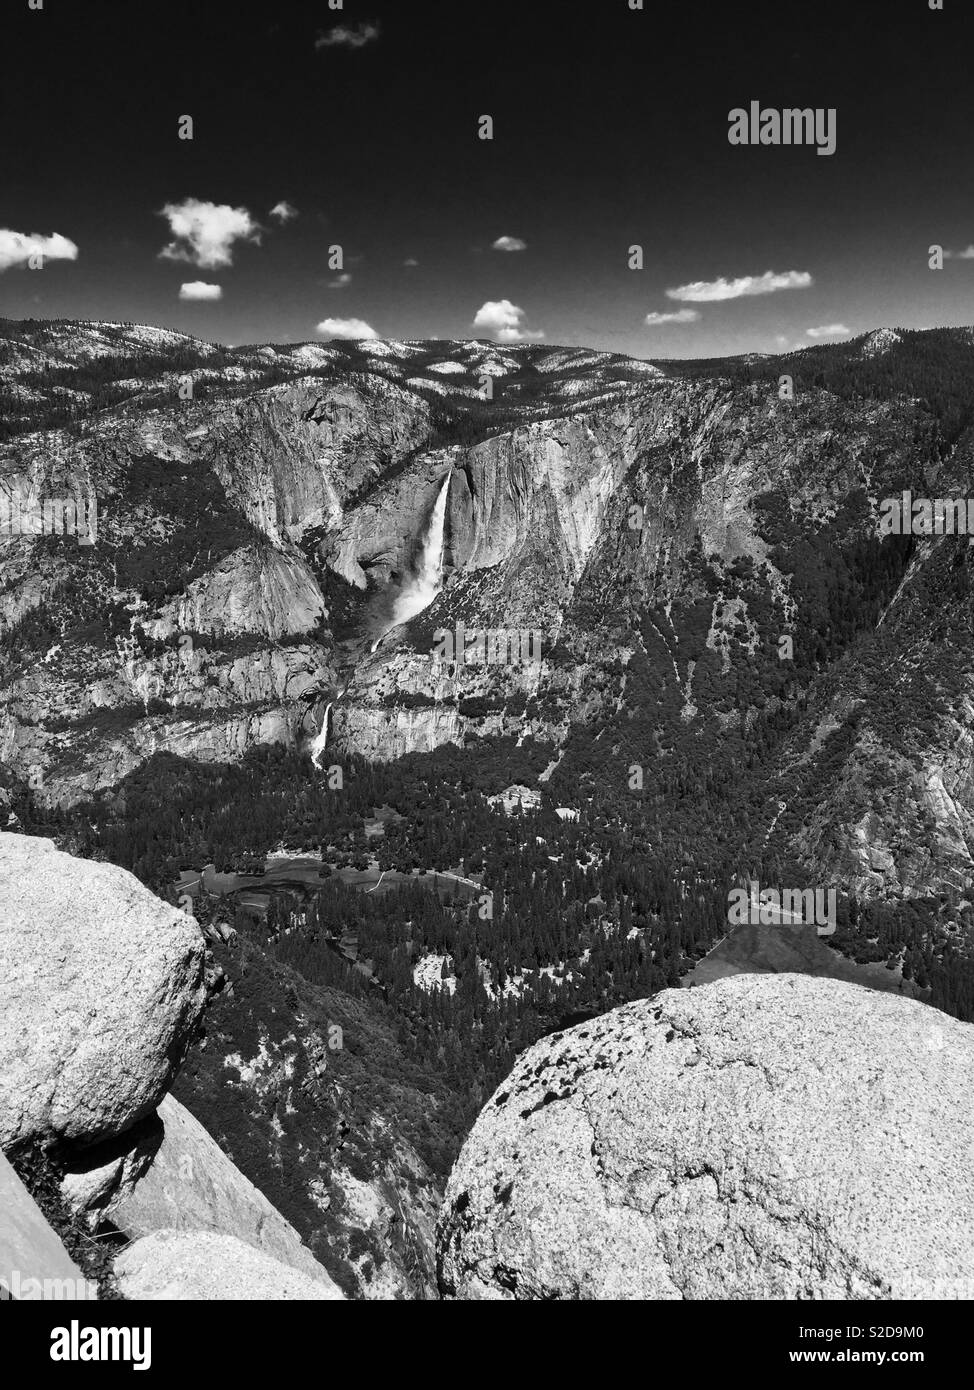 Grande cascade dans le Parc National de Yosemite Photo Stock